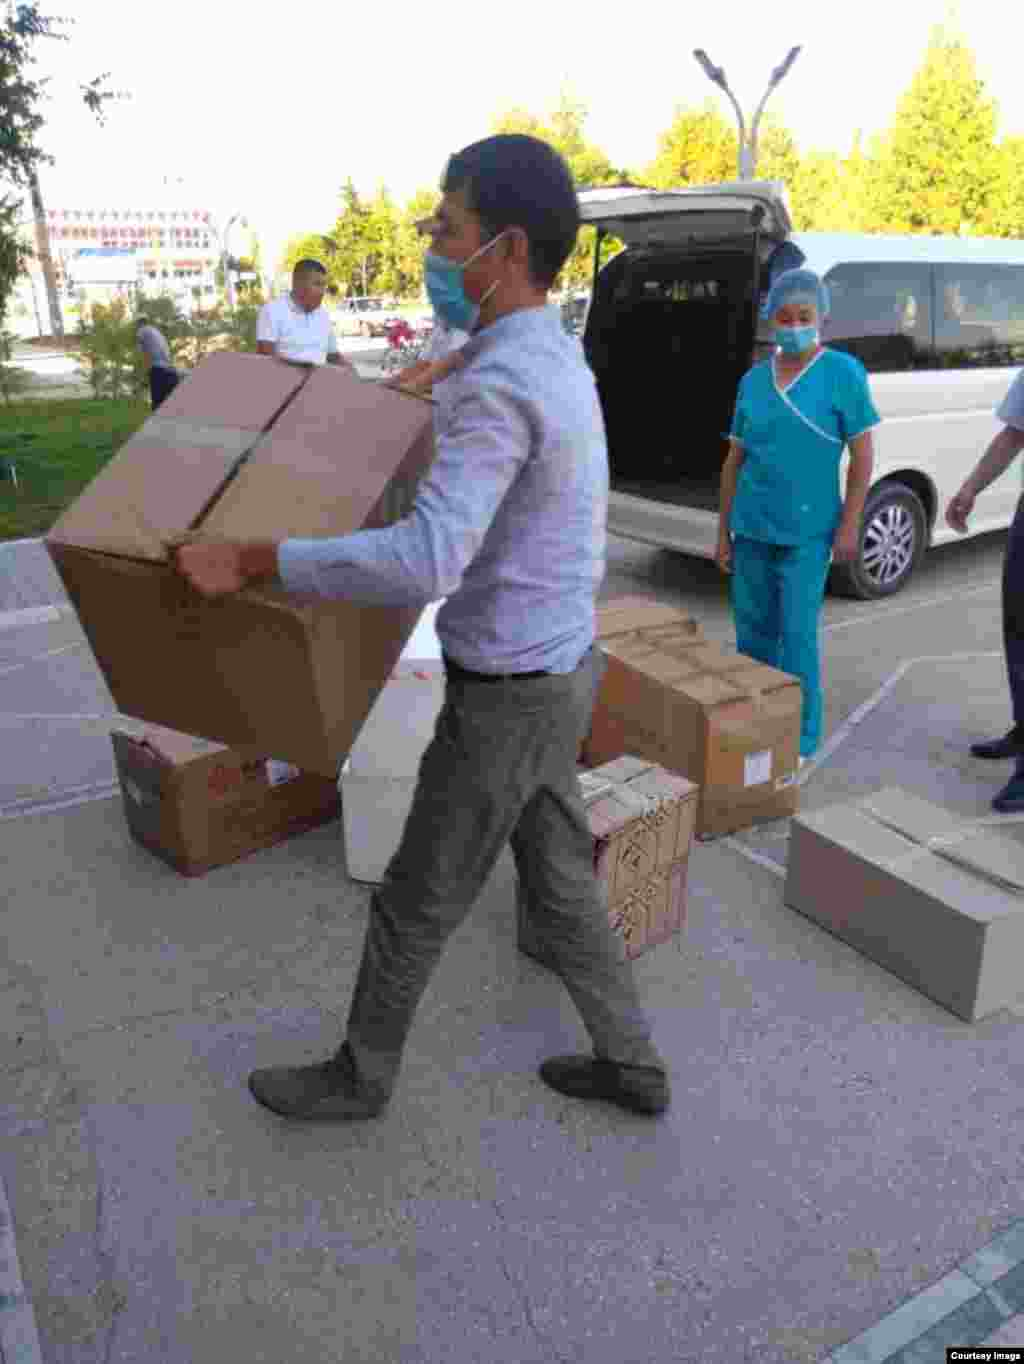 Neighboring Uzbekistan has donated protective gear and lab equipment to help Kyrgyzstan's Batken region​ deal with the rising number of COVID-19 cases.